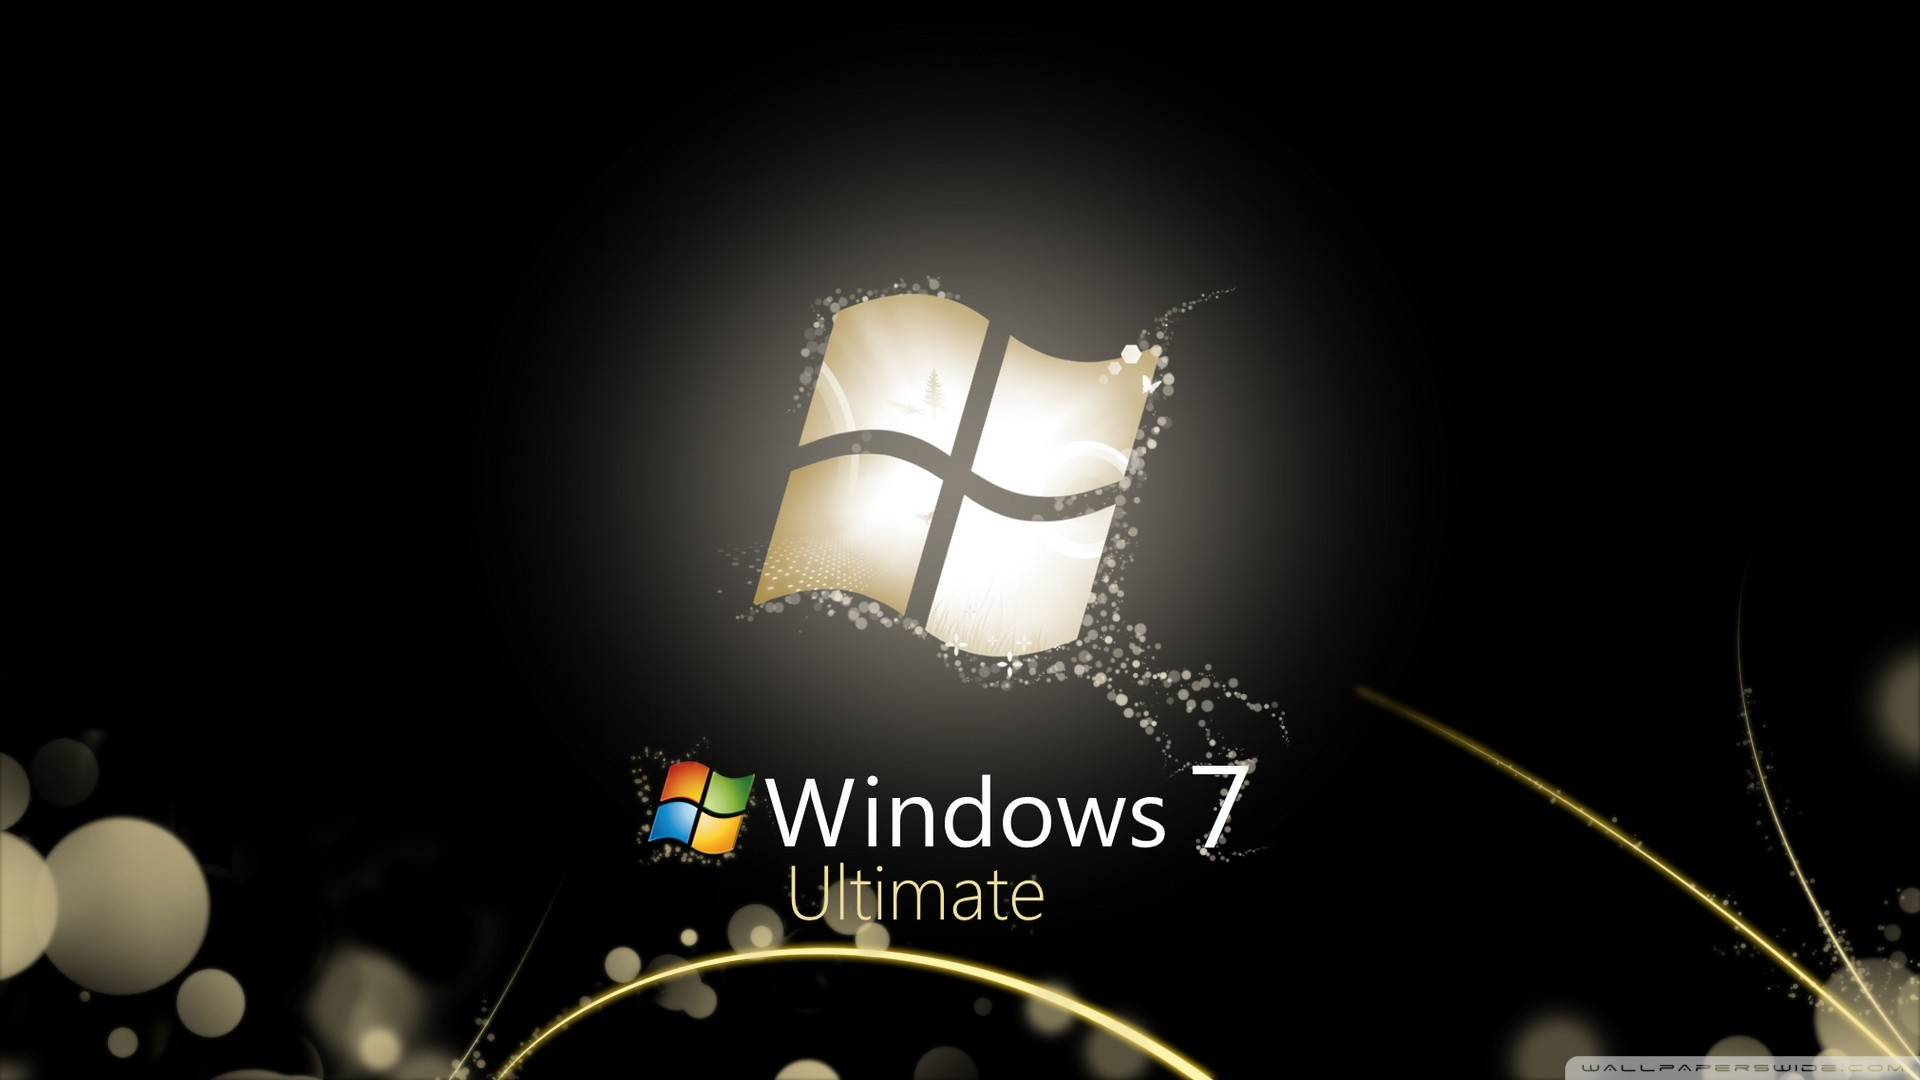 windows 7 hd wallpaper ·①